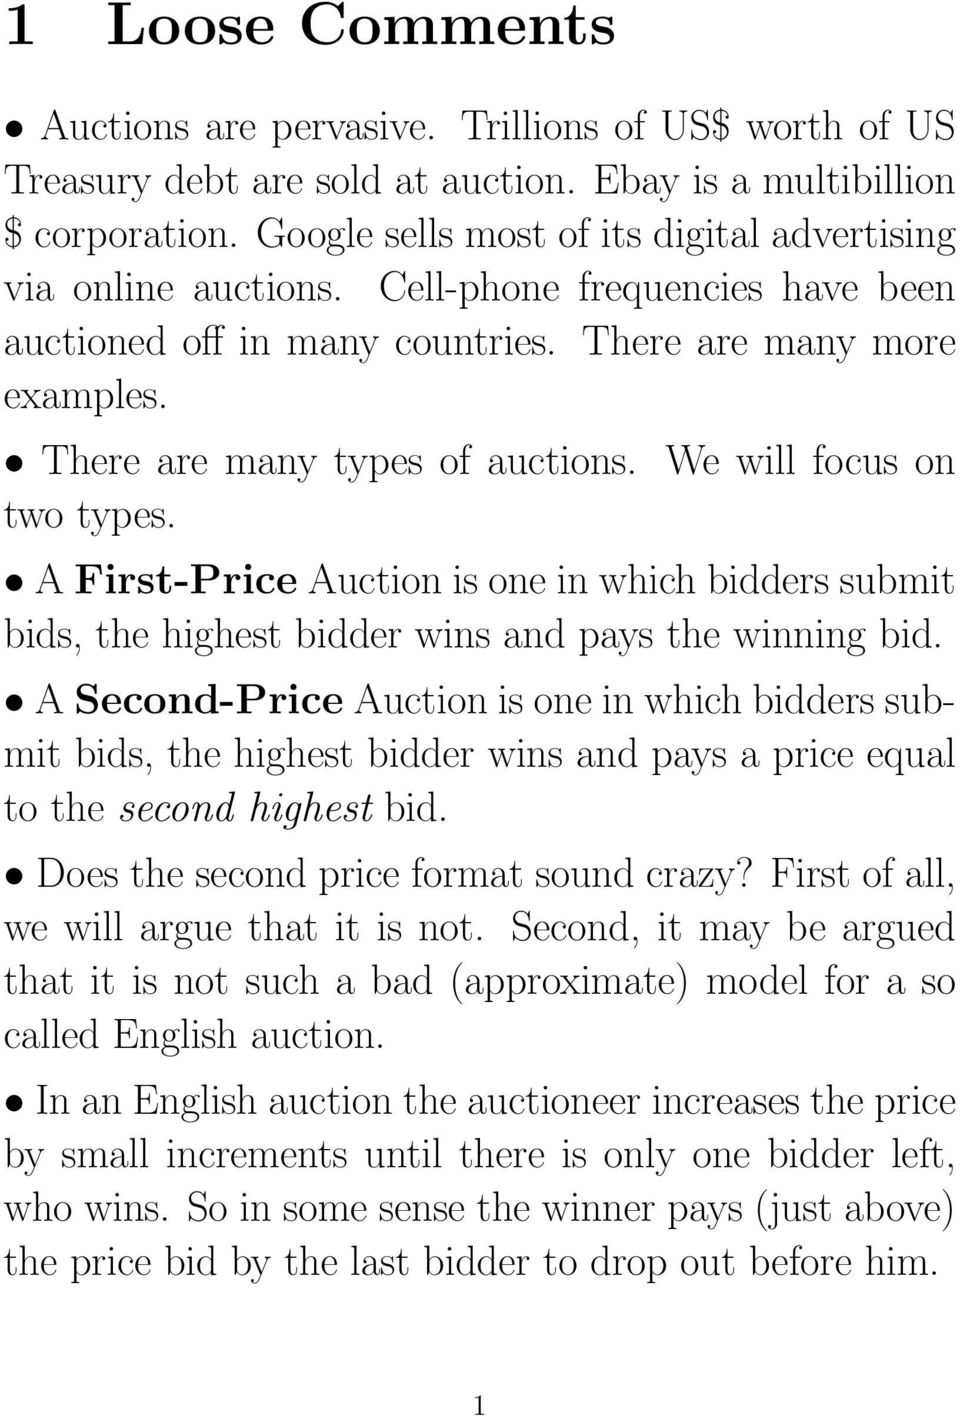 We will focus on two types. A First-Price Auction is one in which bidders submit bids, the highest bidder wins and pays the winning bid.